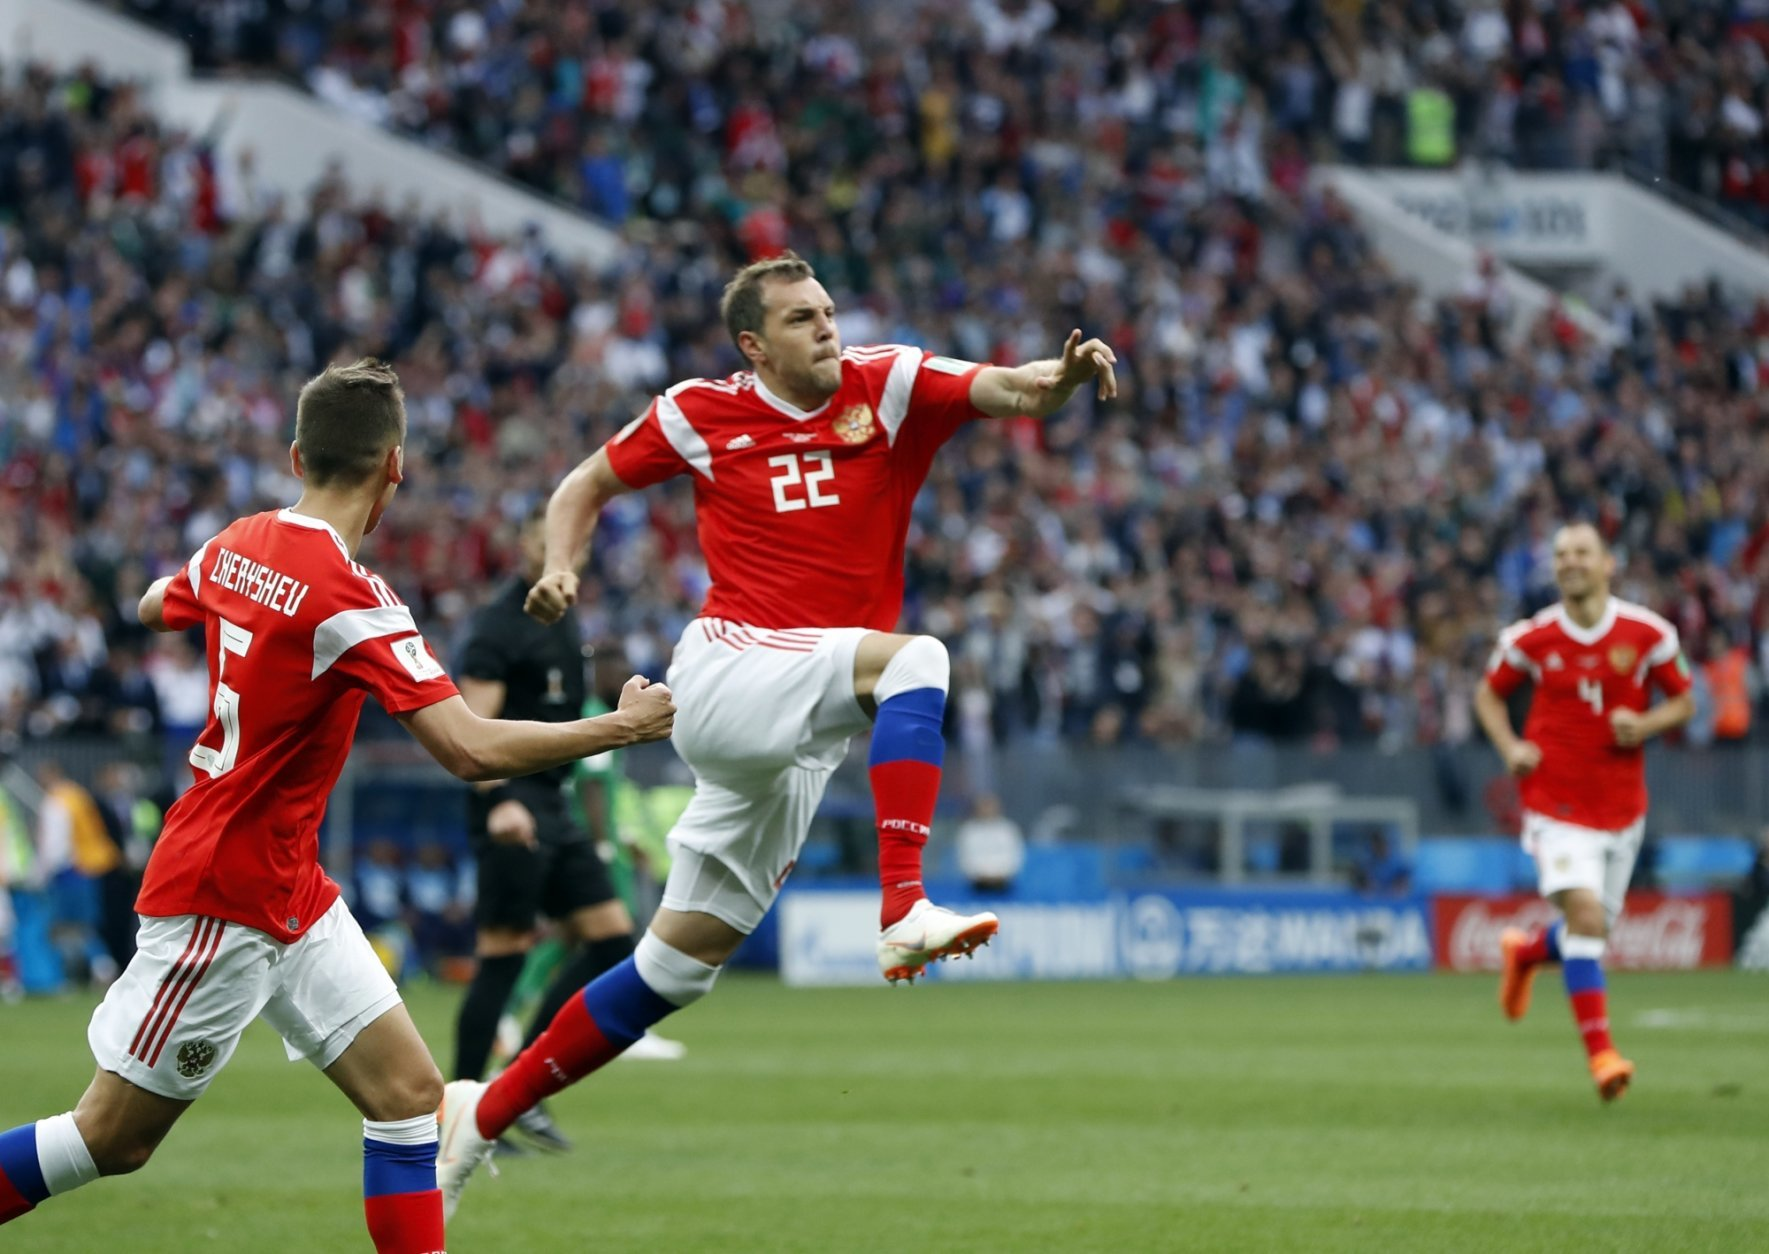 Russia's Artyom Dzyuba, center, celebrates after scoring his side's third goal during the group A match between Russia and Saudi Arabia which opens the 2018 soccer World Cup at the Luzhniki stadium in Moscow, Russia, Thursday, June 14, 2018. (AP Photo/Pavel Golovkin)